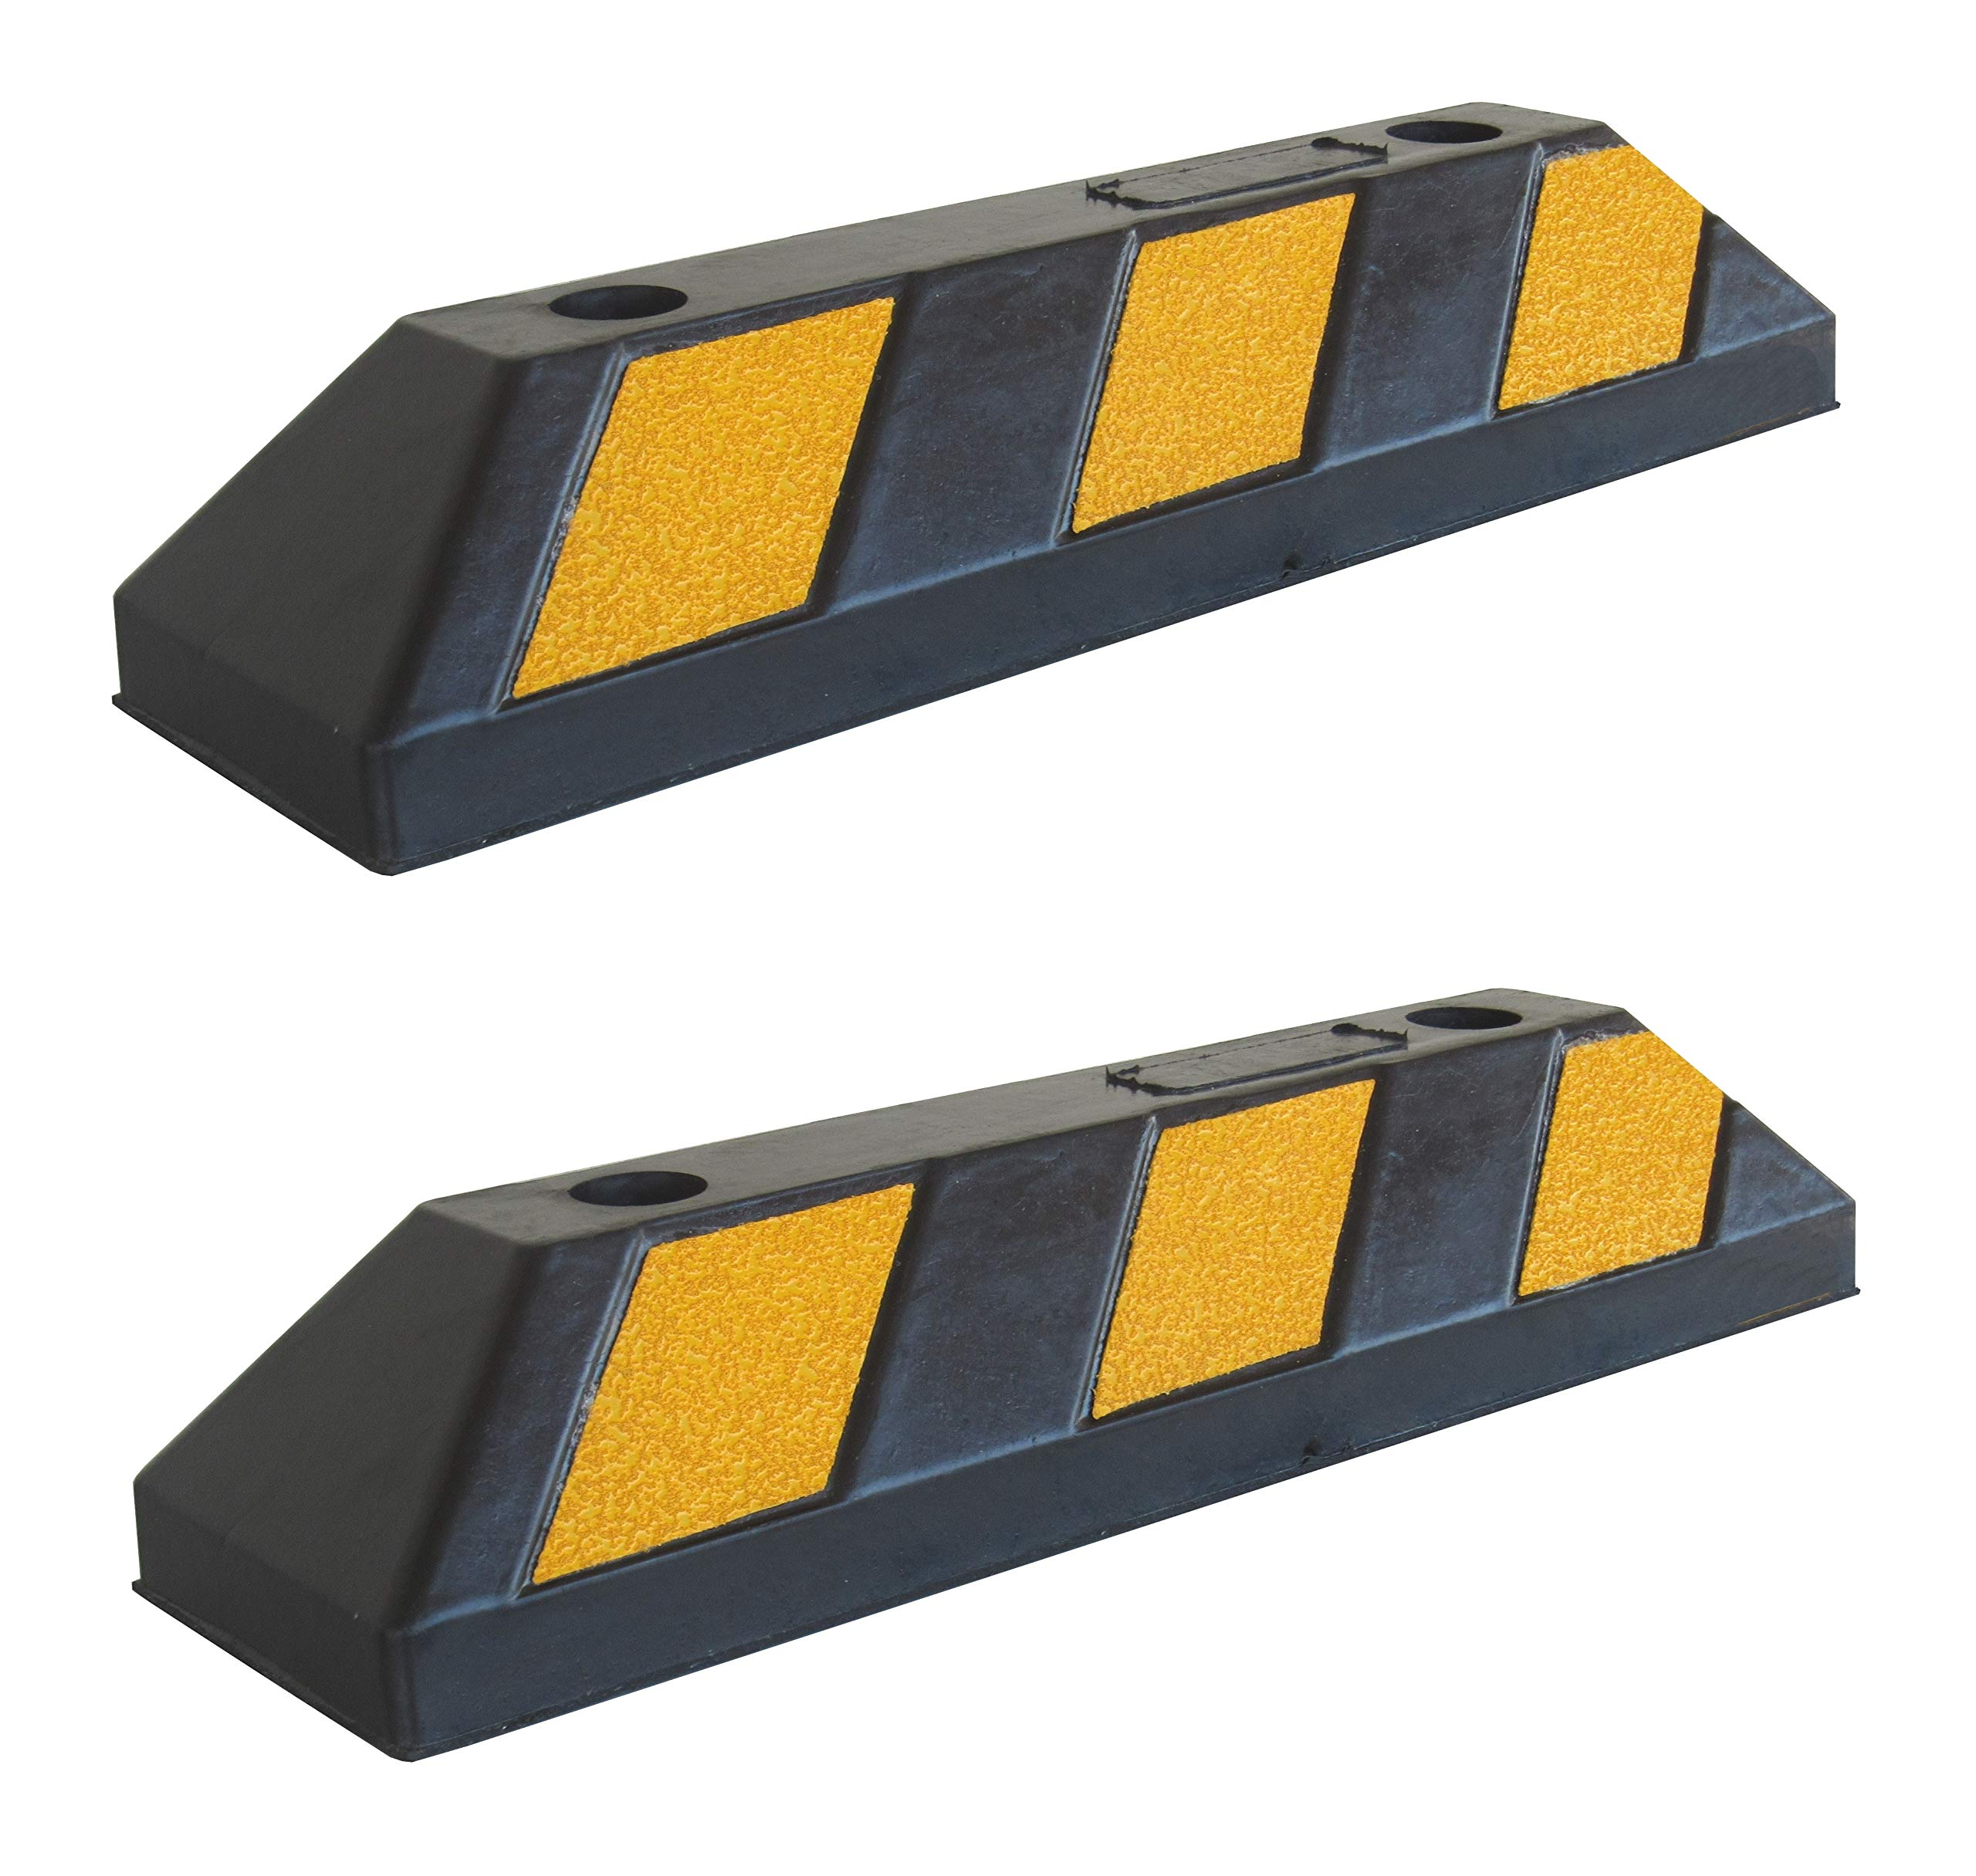 Parking Stopper for Garage Floor, Blocks Car Wheels as Parking Aid and Stops the Tires, acting as Rubber Parking Curbs that Protect Vehicle Bumpers and Garage Walls, 21.6''x5.9''x3.9'' (Pack of 2)